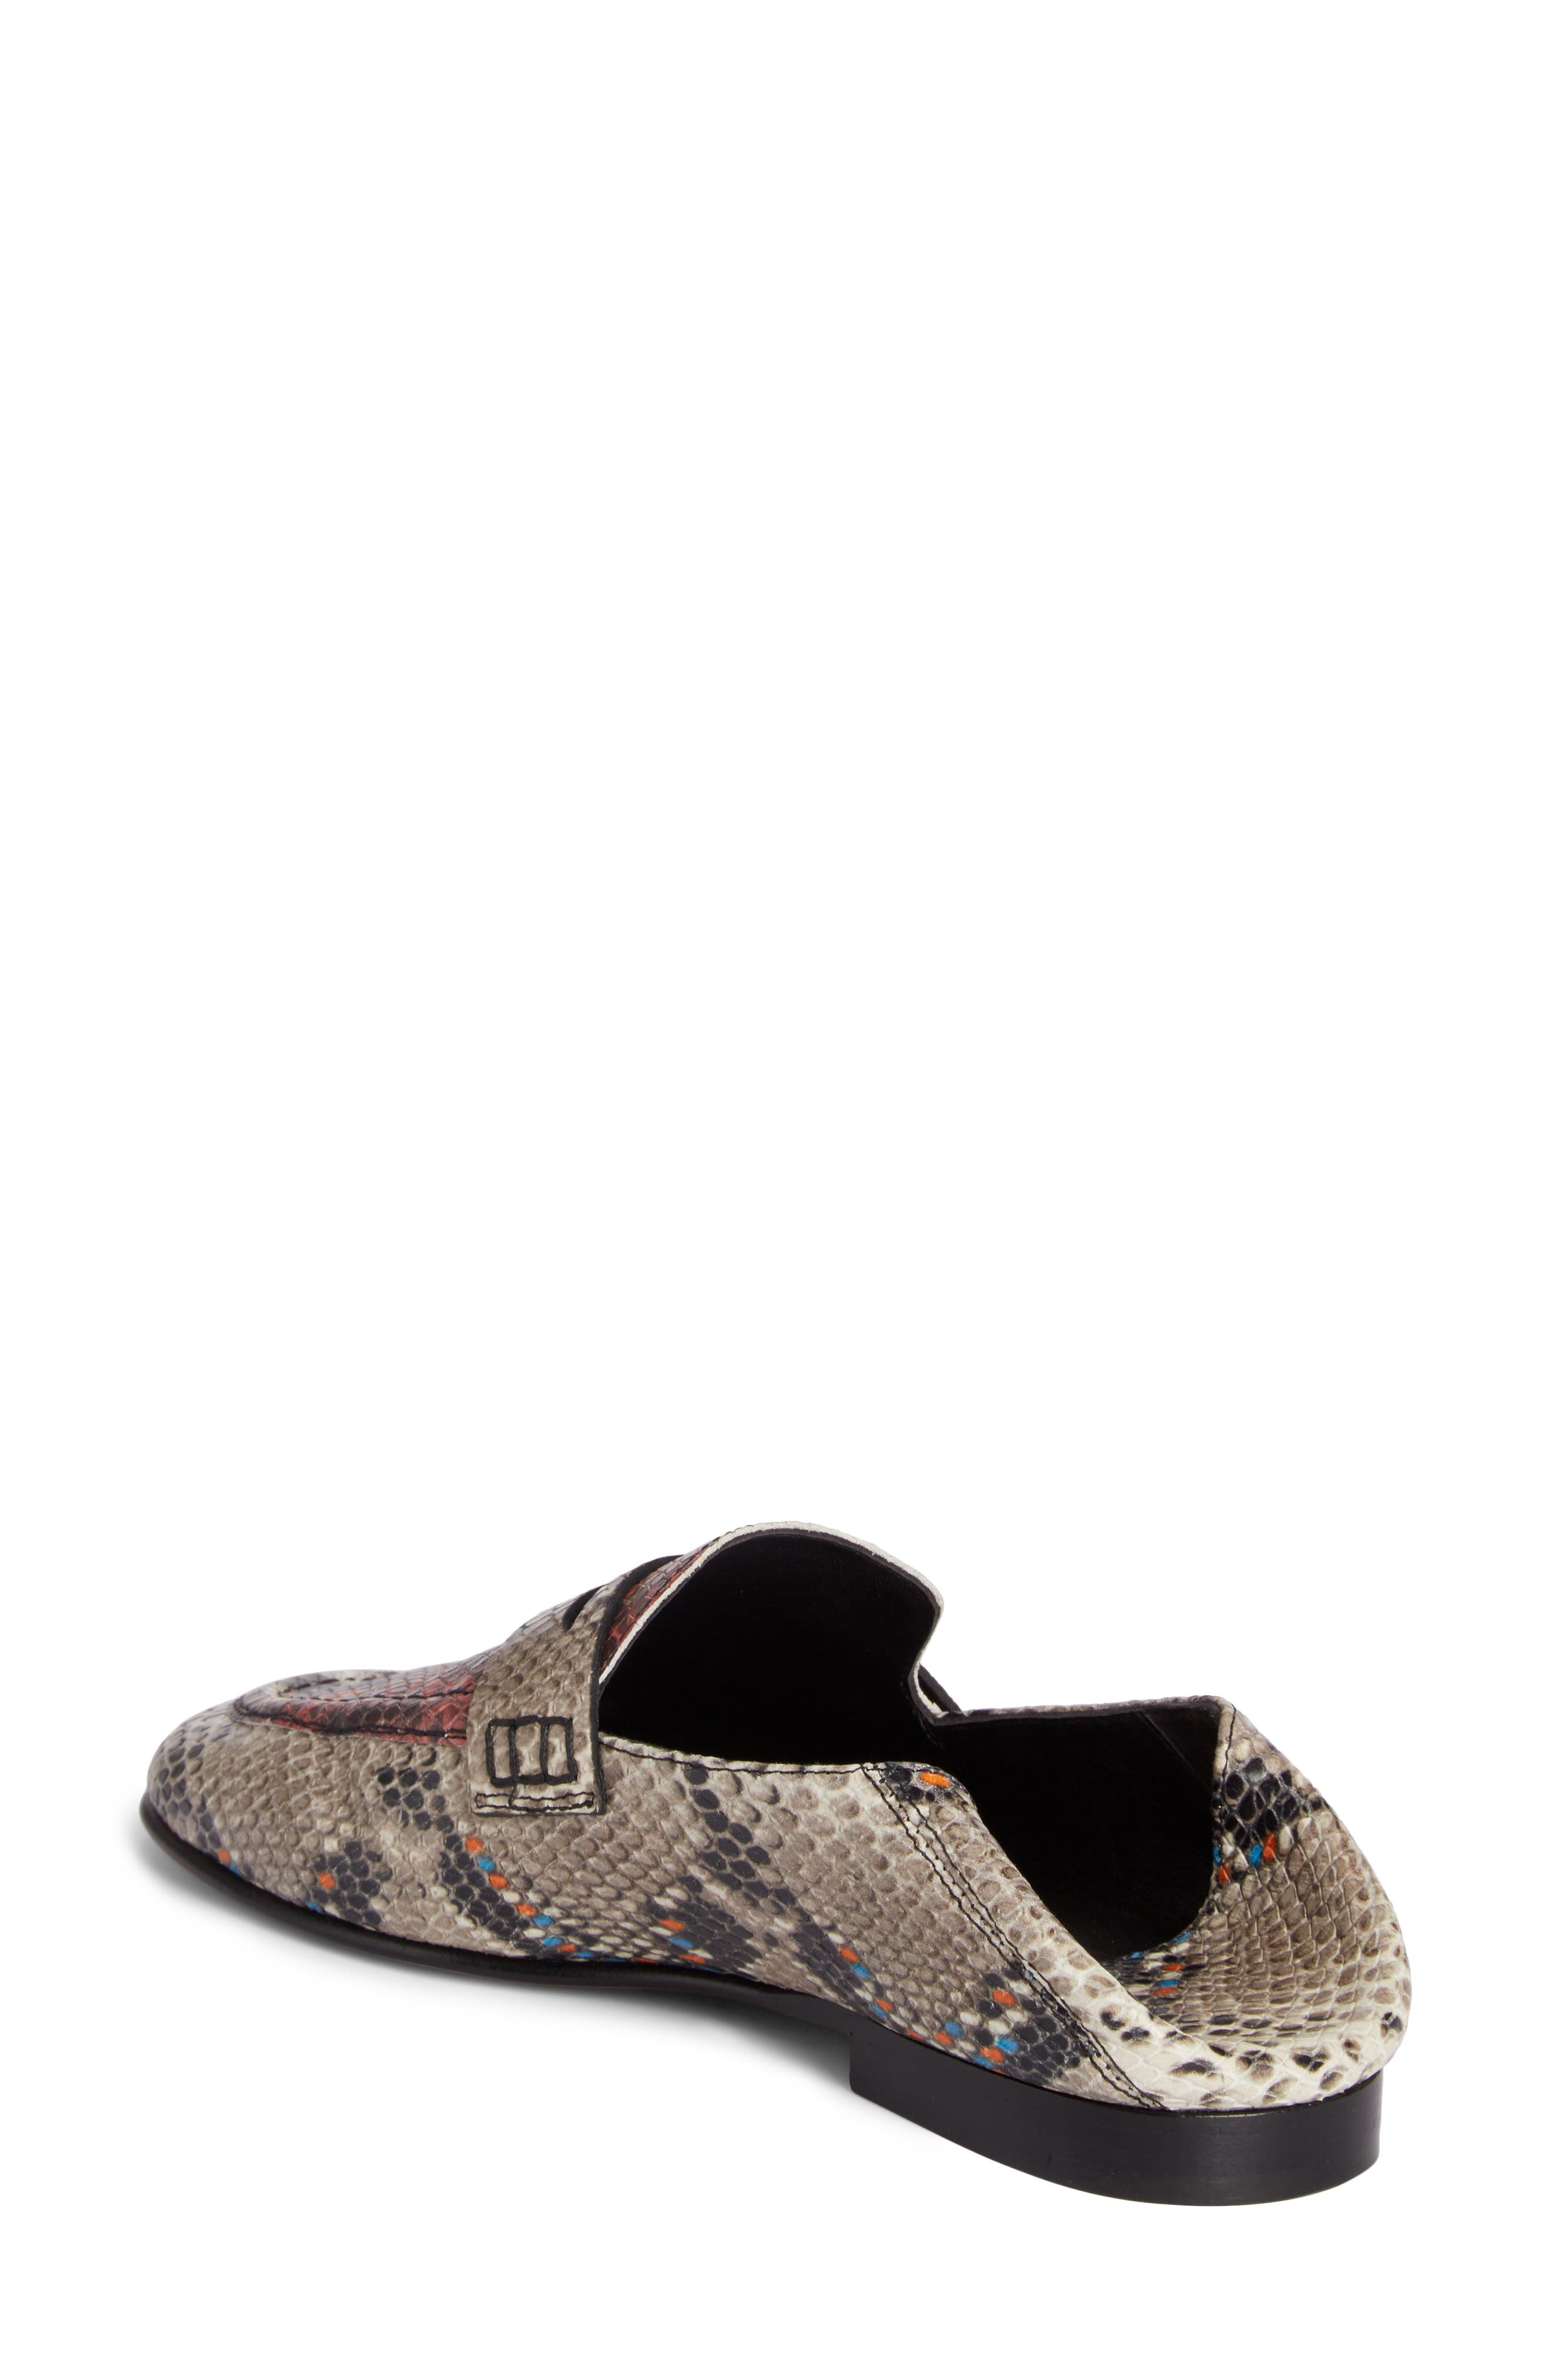 Alternate Image 3  - Isabel Marant Fezzy Snakeskin Embossed Convertible Loafer (Women)